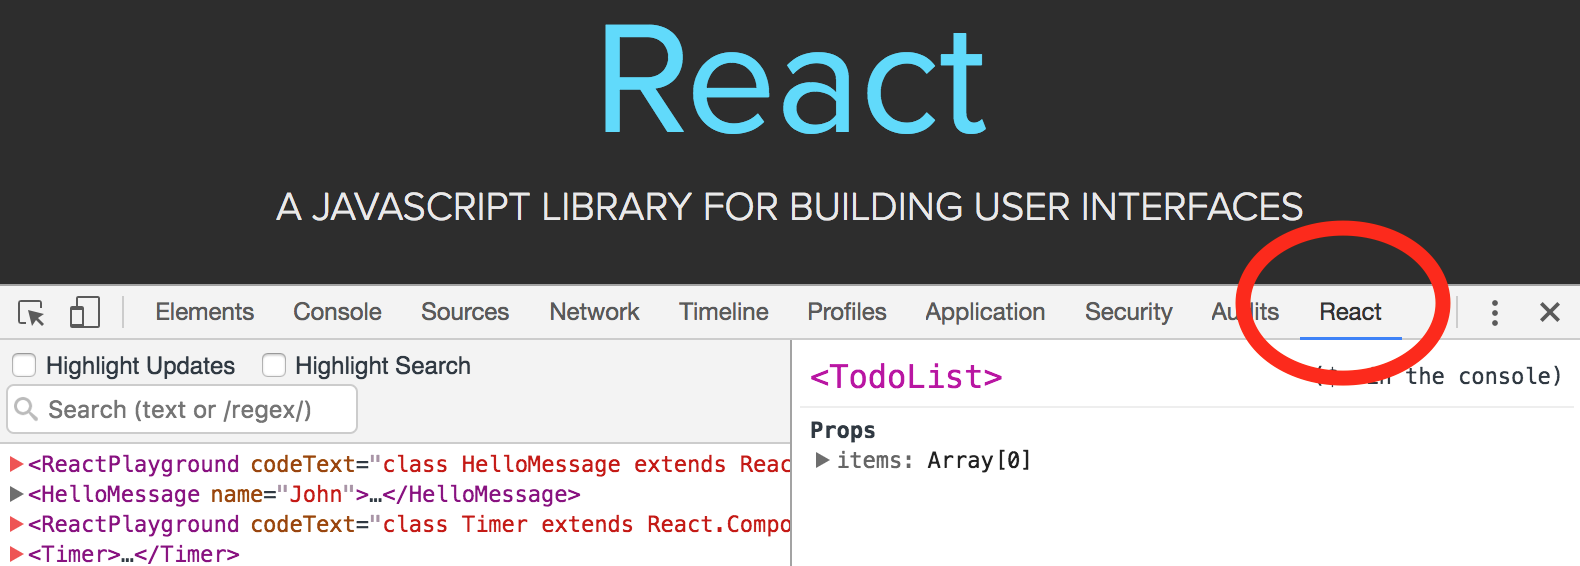 facebook/react-devtools - Libraries io